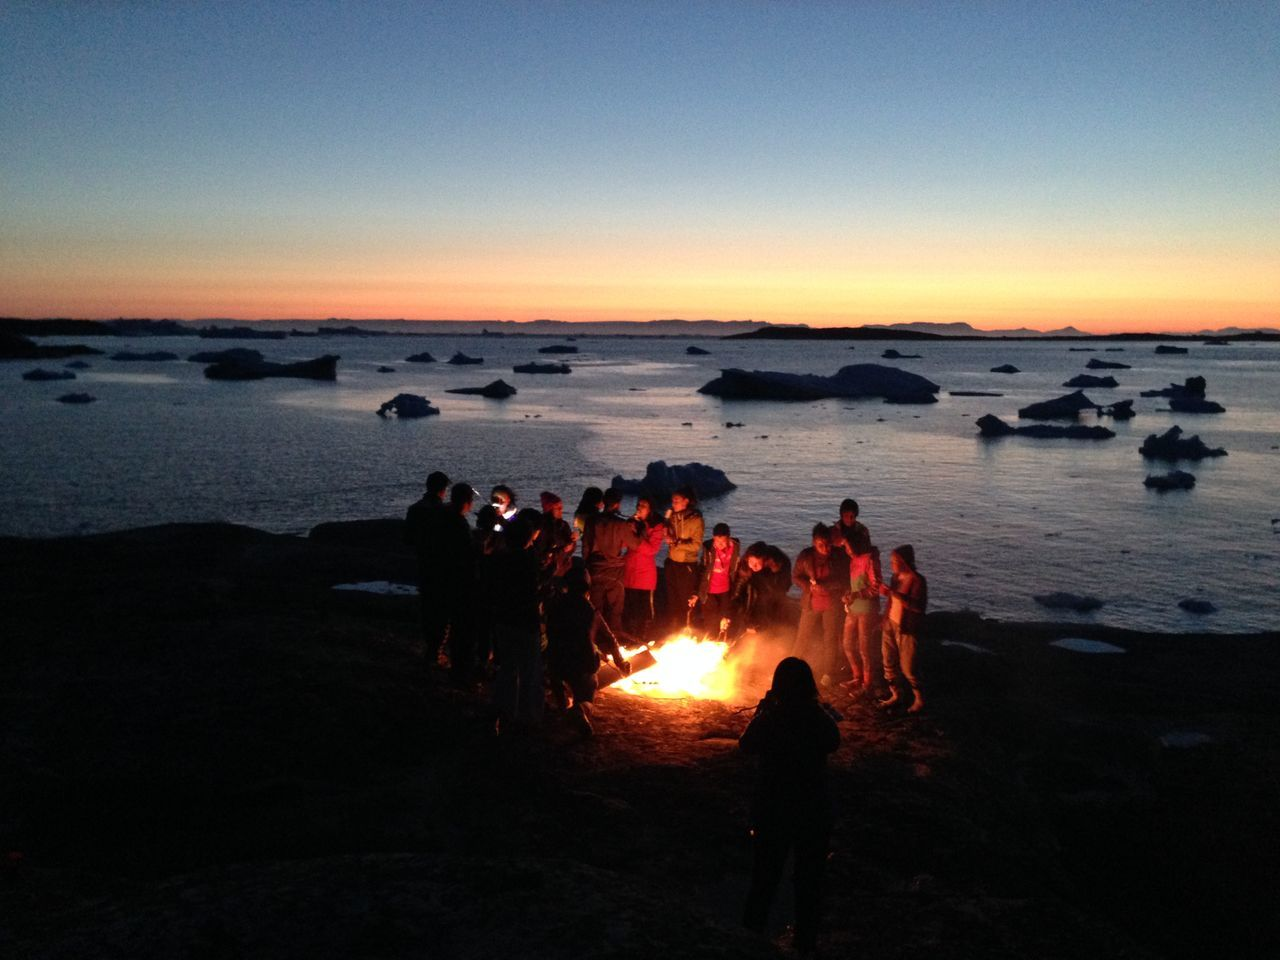 View of people surrounding bonfire on beach